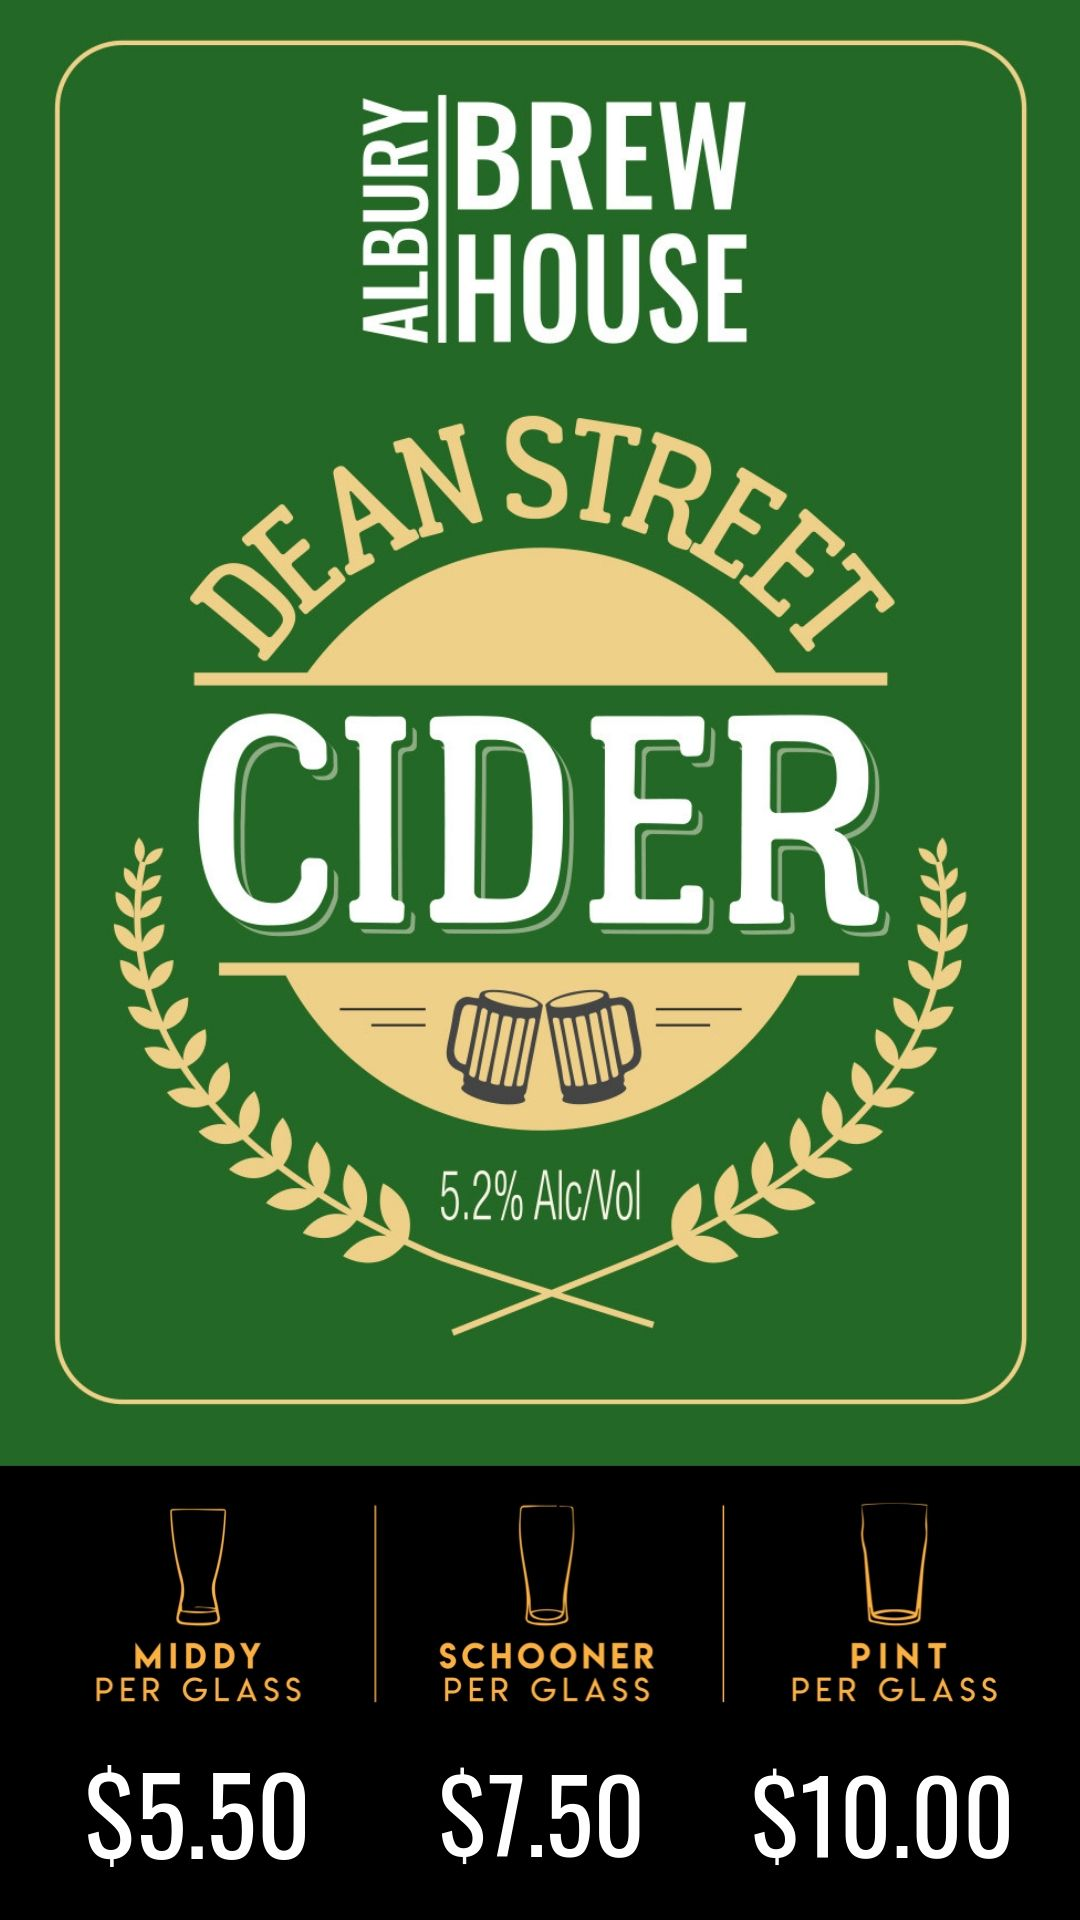 Named after Albury's iconic main street. Dean St Cider is made from 100% apples, which give it a true apple flavour, then left unfiltered and unpasteurized to create a nice scrumpy finish.